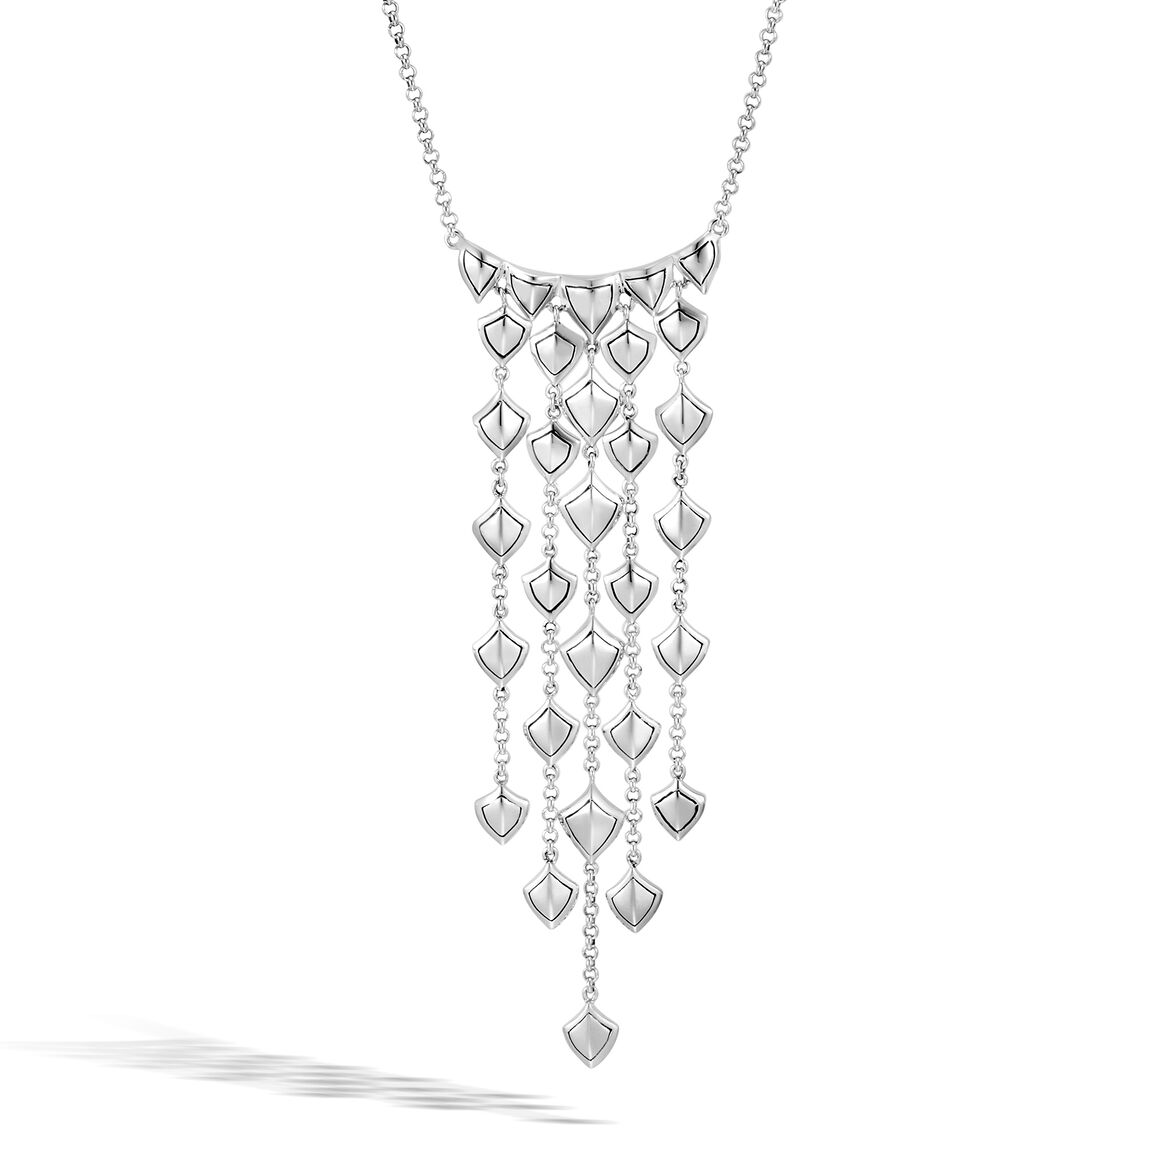 Legends Naga Necklace in Silver